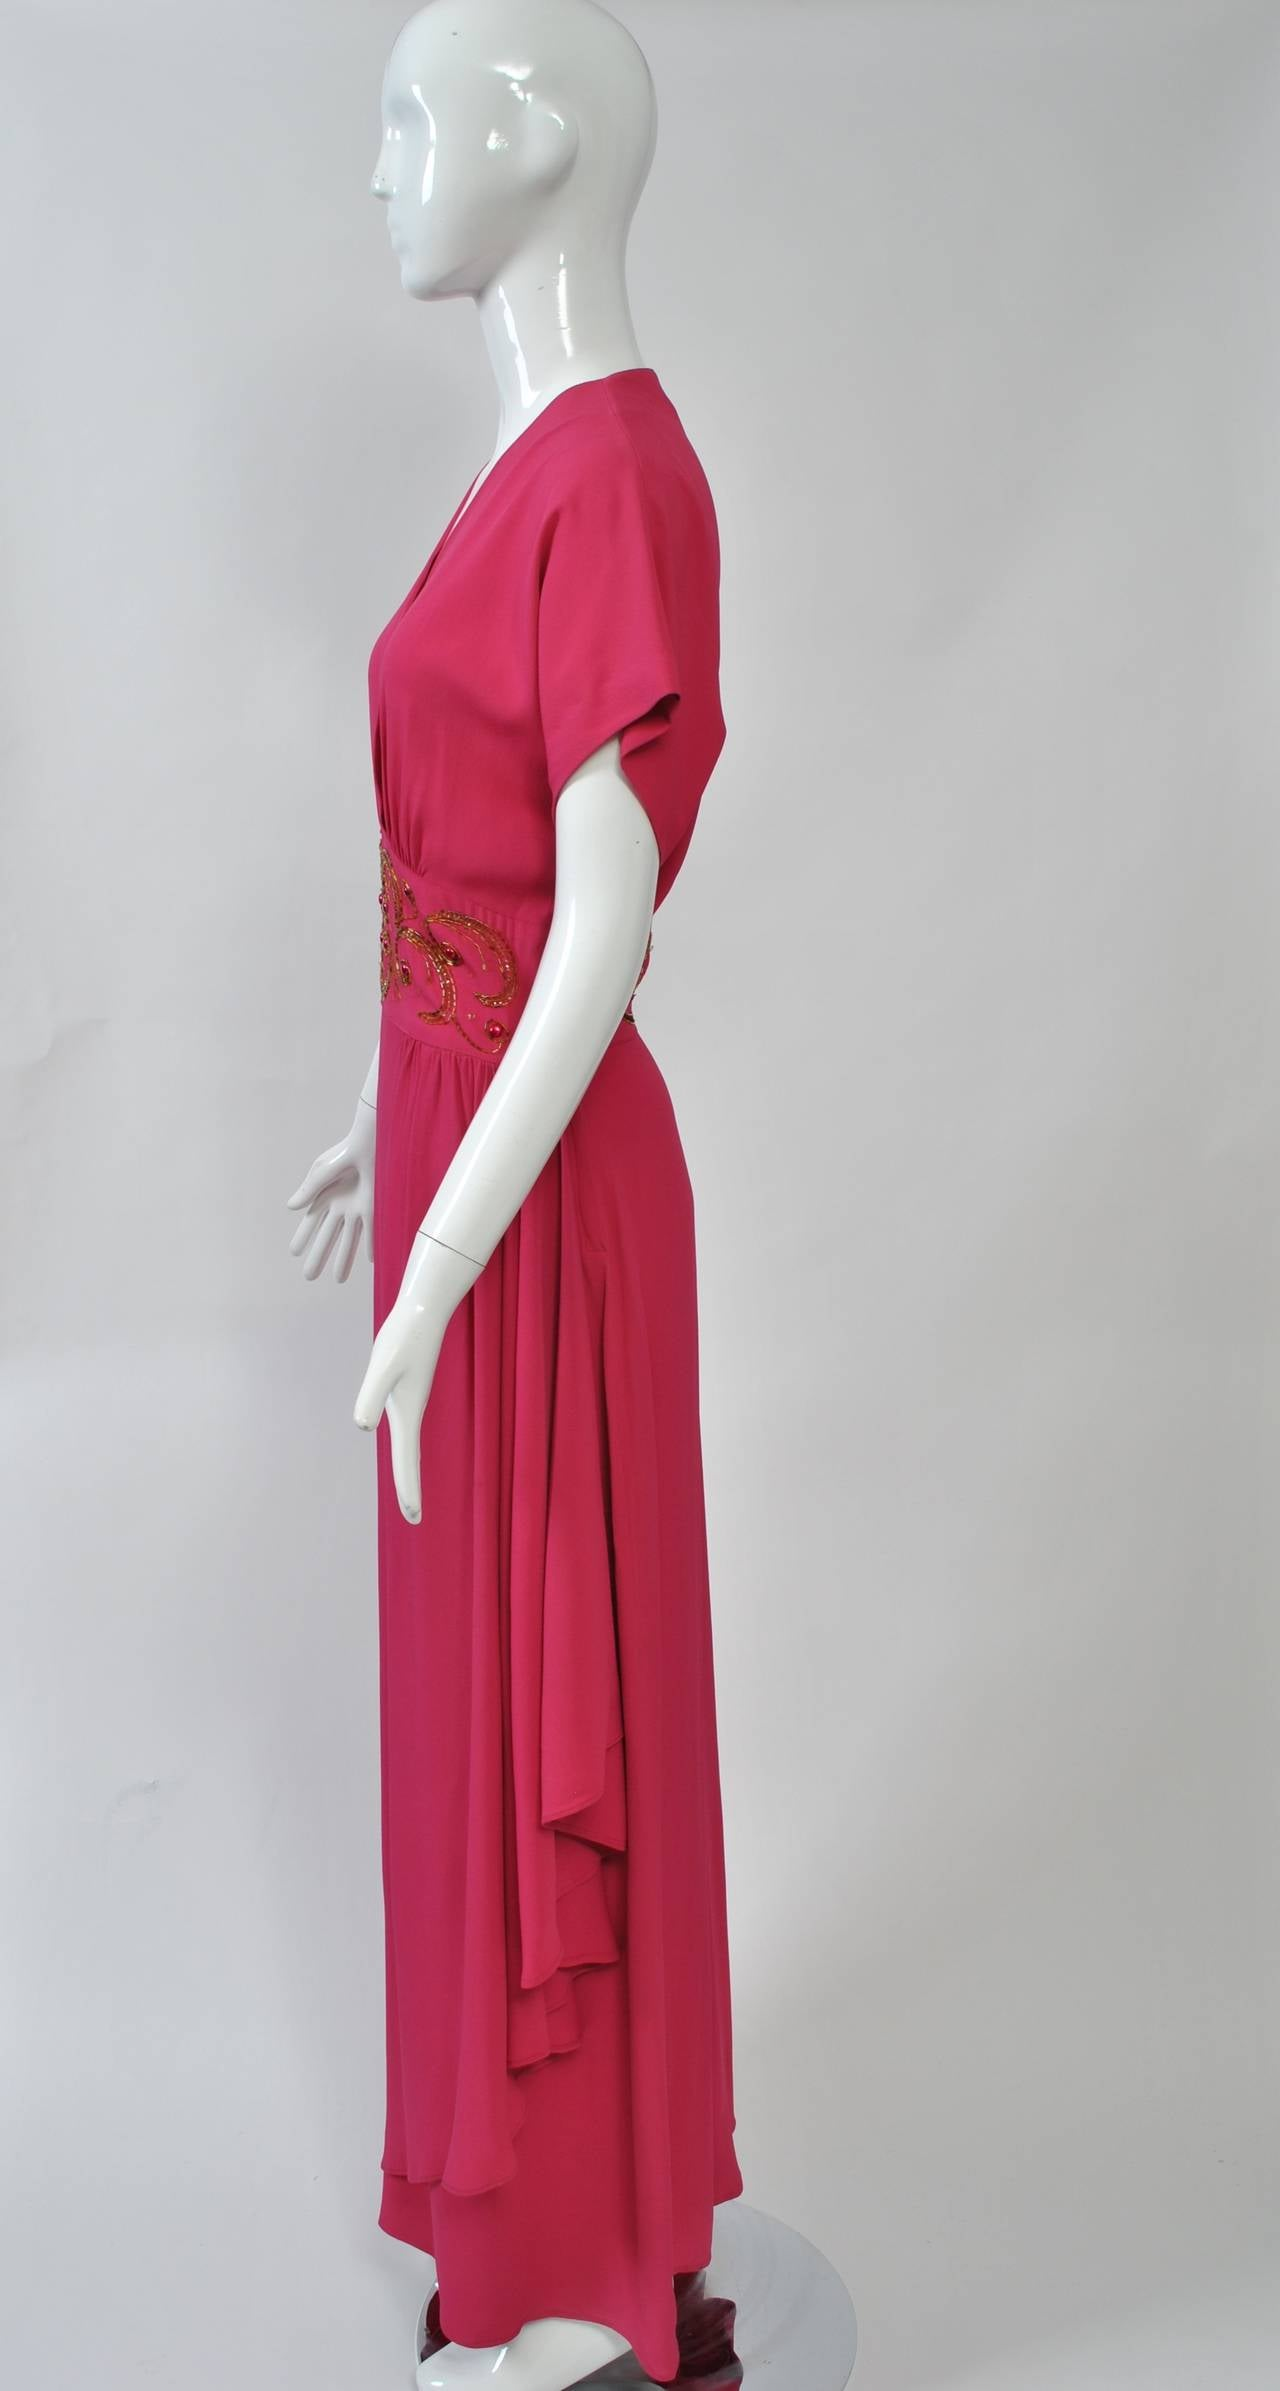 Emma Domb Rose 1940s Gown In Excellent Condition For Sale In Alford, MA